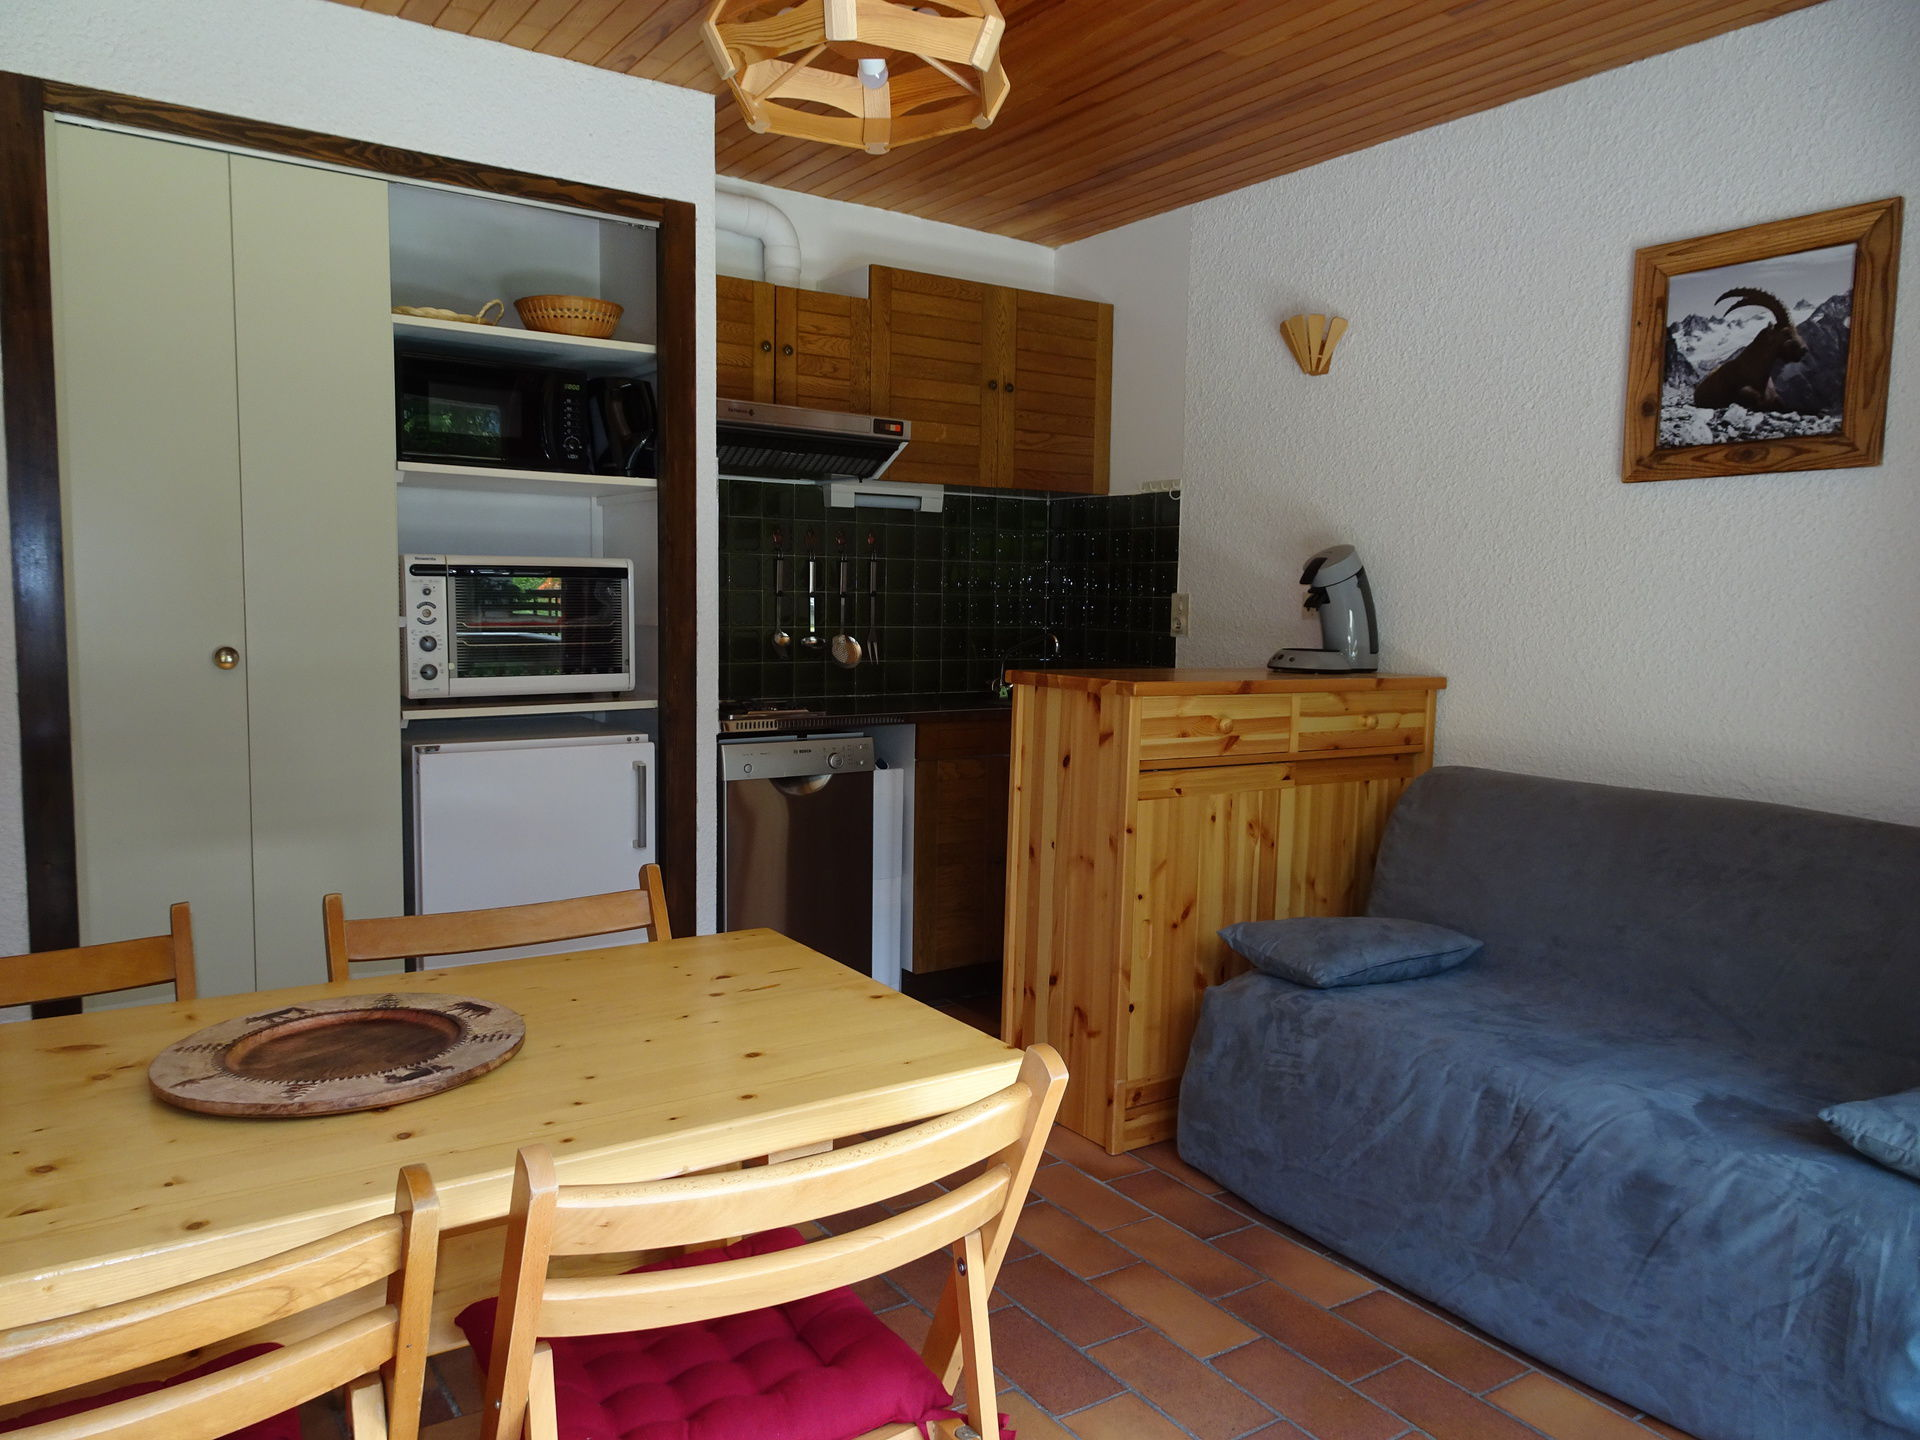 Rental reference : AMONT2B to Pralognan la Vanoise